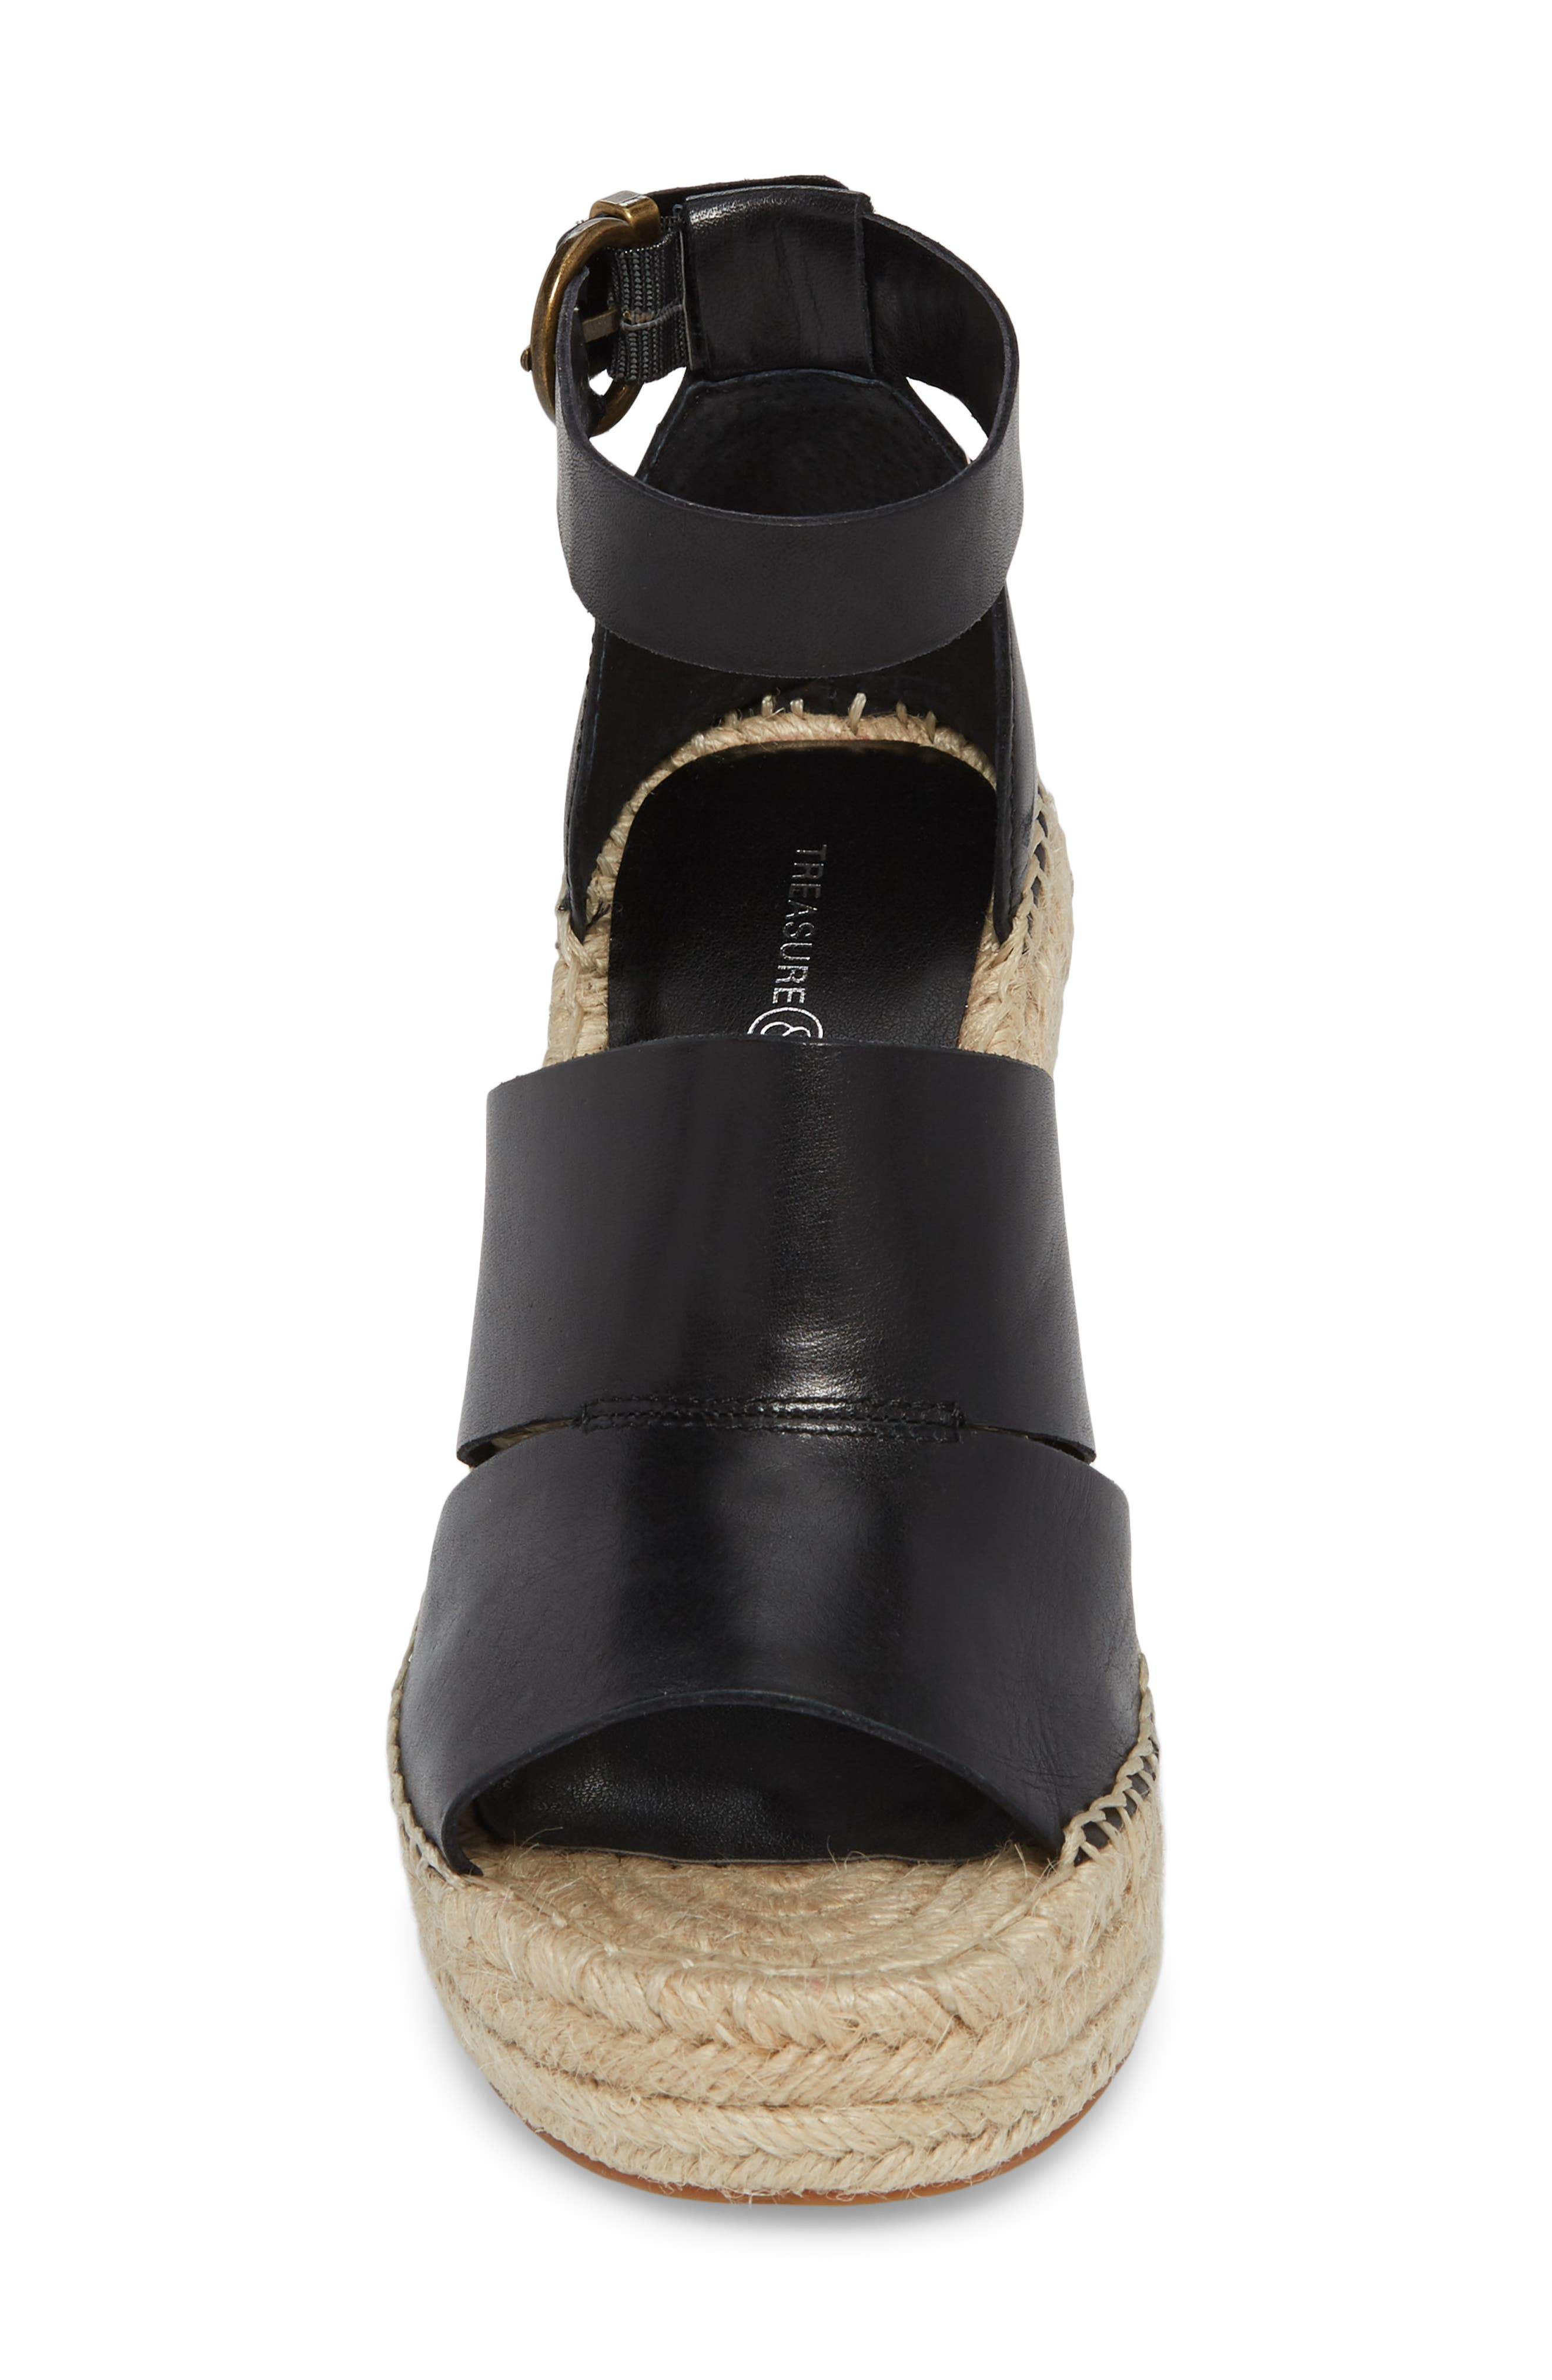 Sannibel Platform Wedge Sandal,                             Alternate thumbnail 4, color,                             BLACK LEATHER